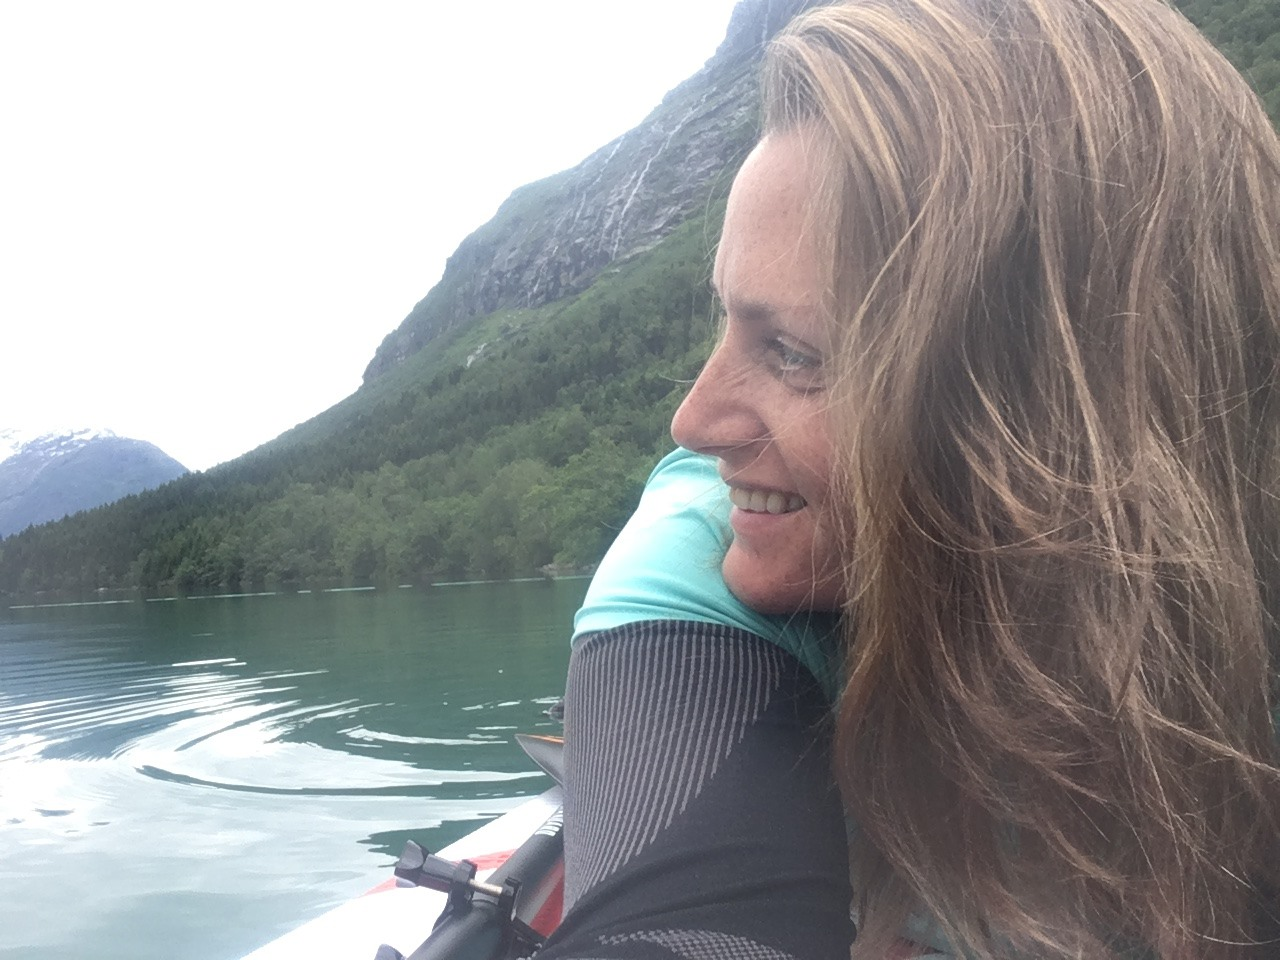 Camilla Stand Up Paddling on beautiful Lovatnet Lake in Norway